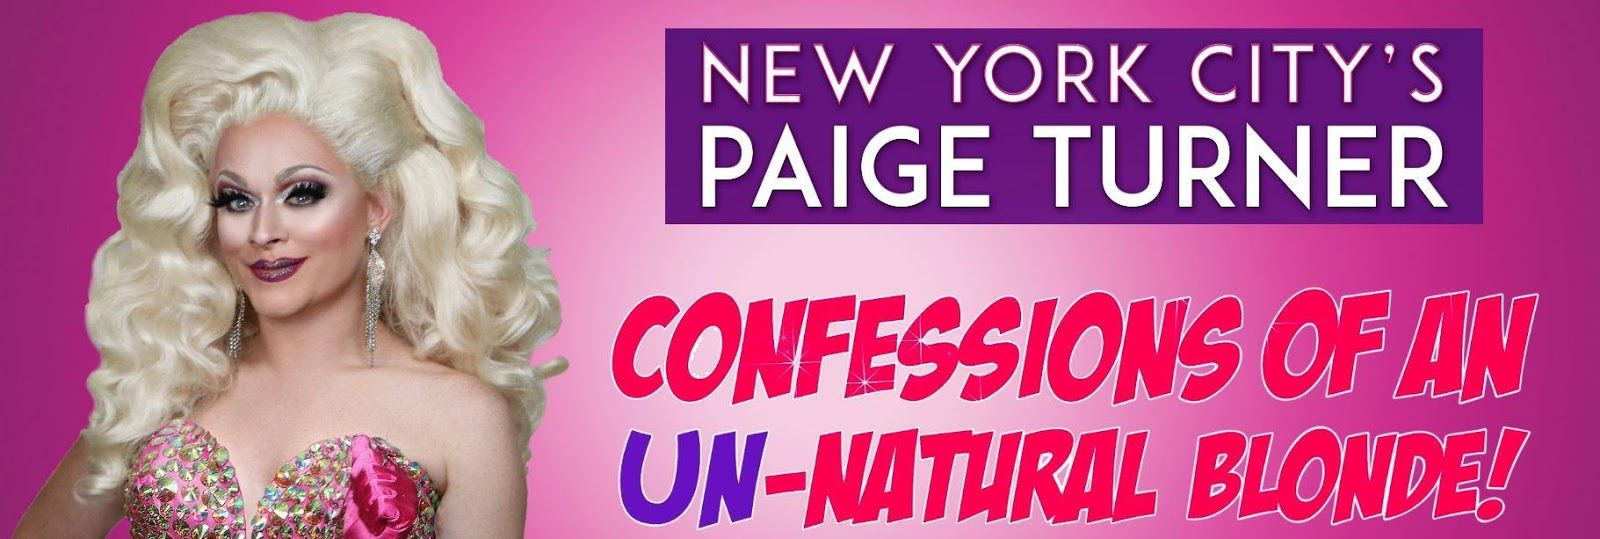 Confessions of an Un-Natural Blonde Paige Turner